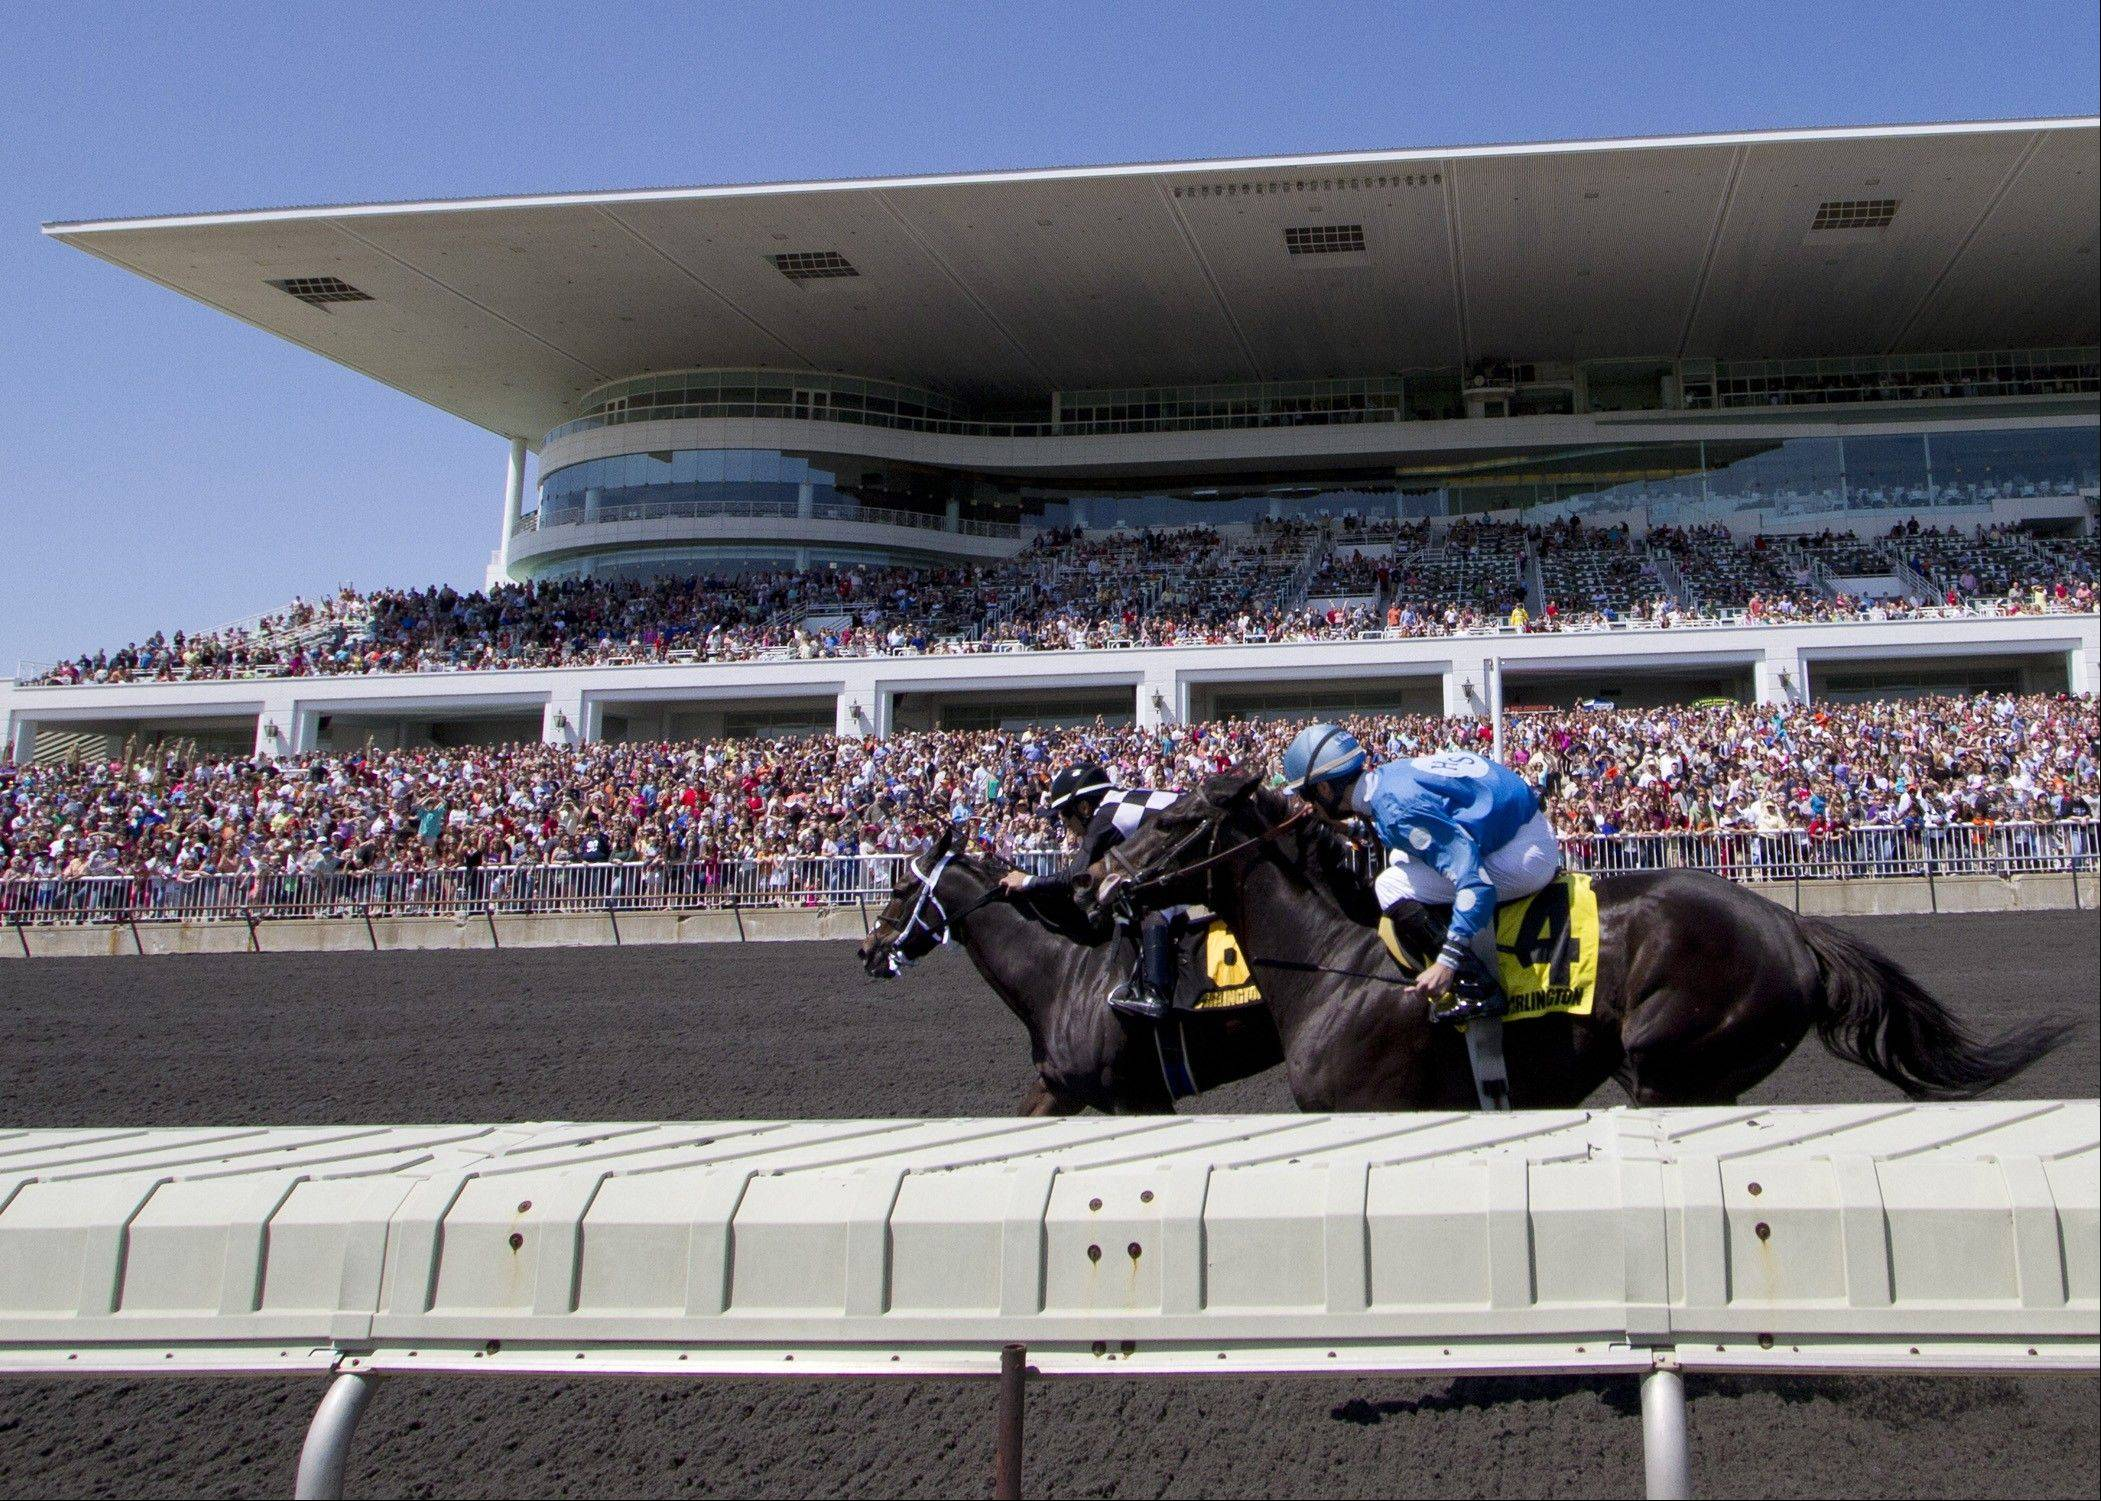 Arlington would keep slots, grandstand separate